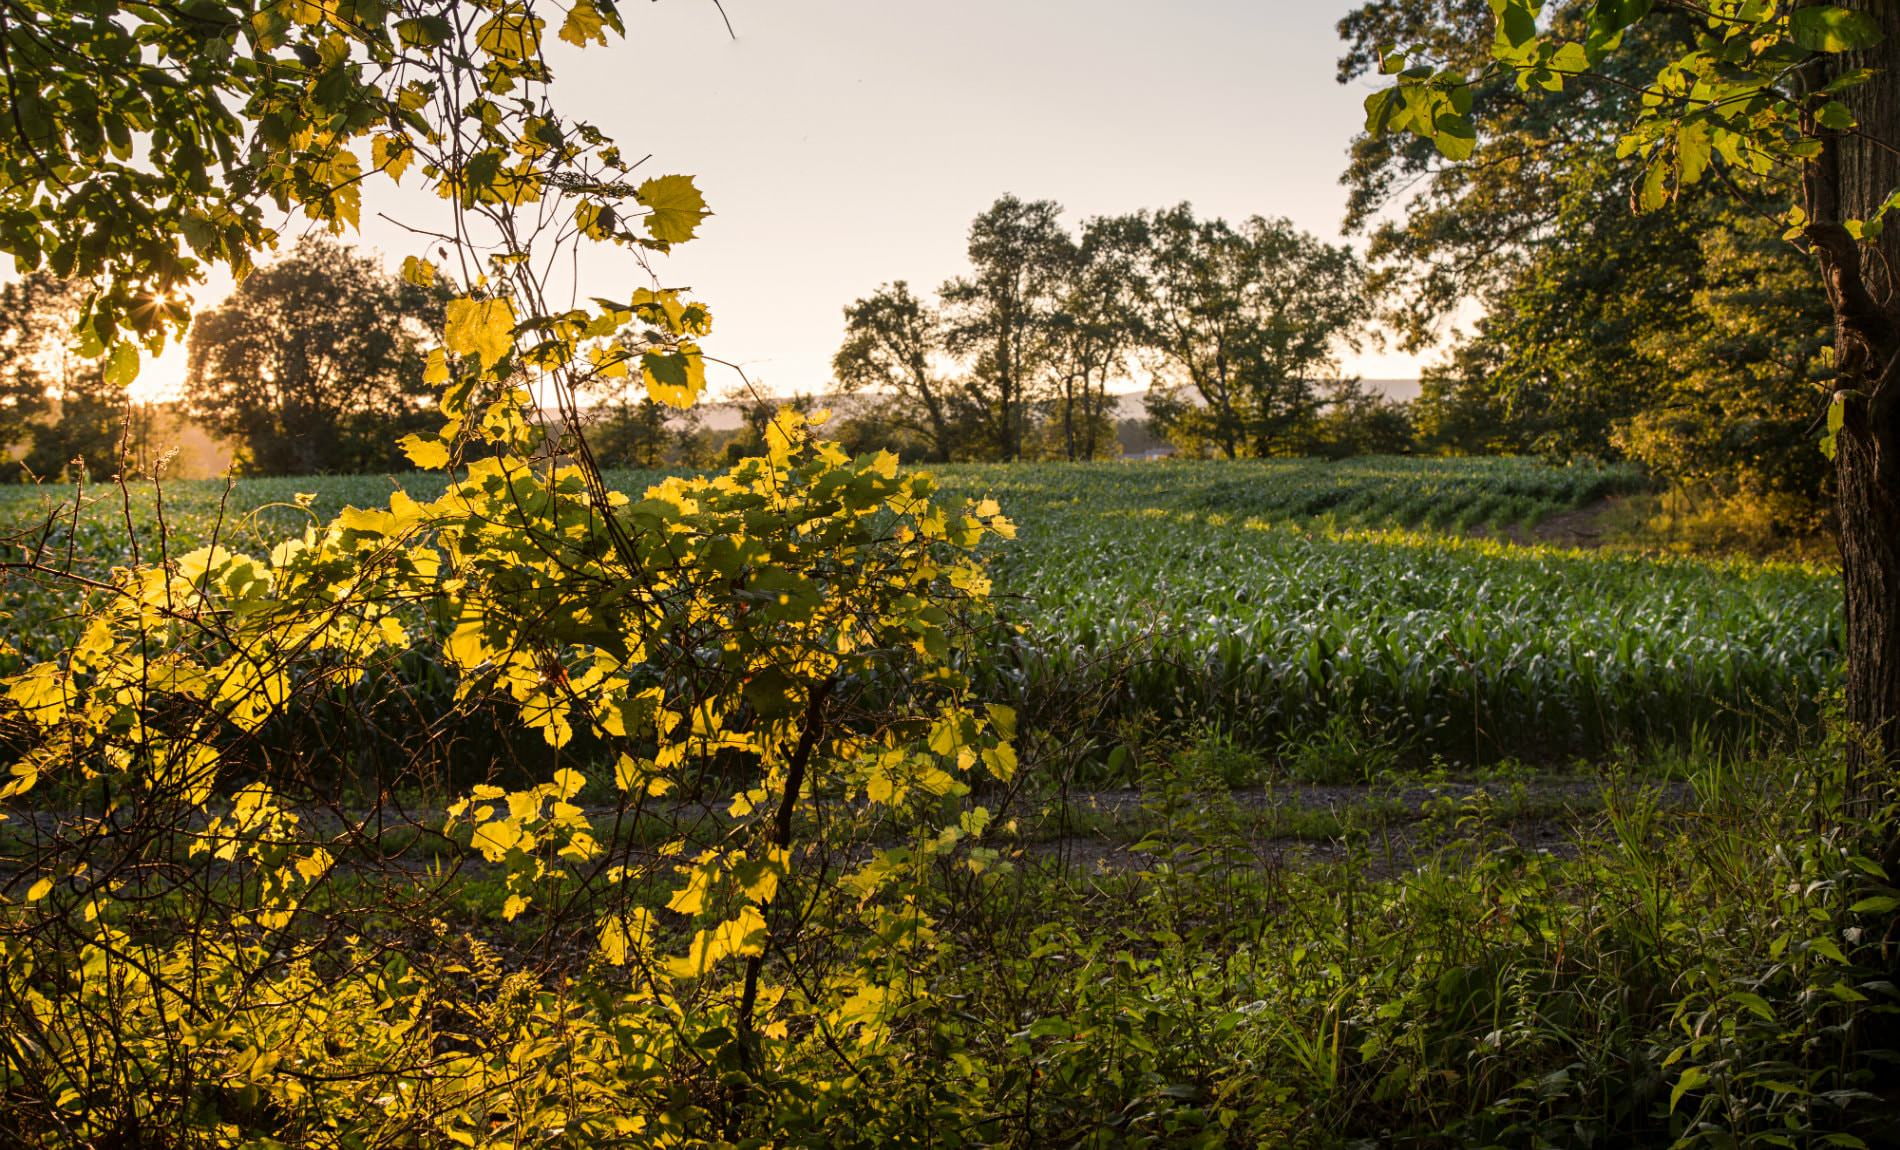 Green corn field surround by yellow and green trees with the setting sun peaking through the trees